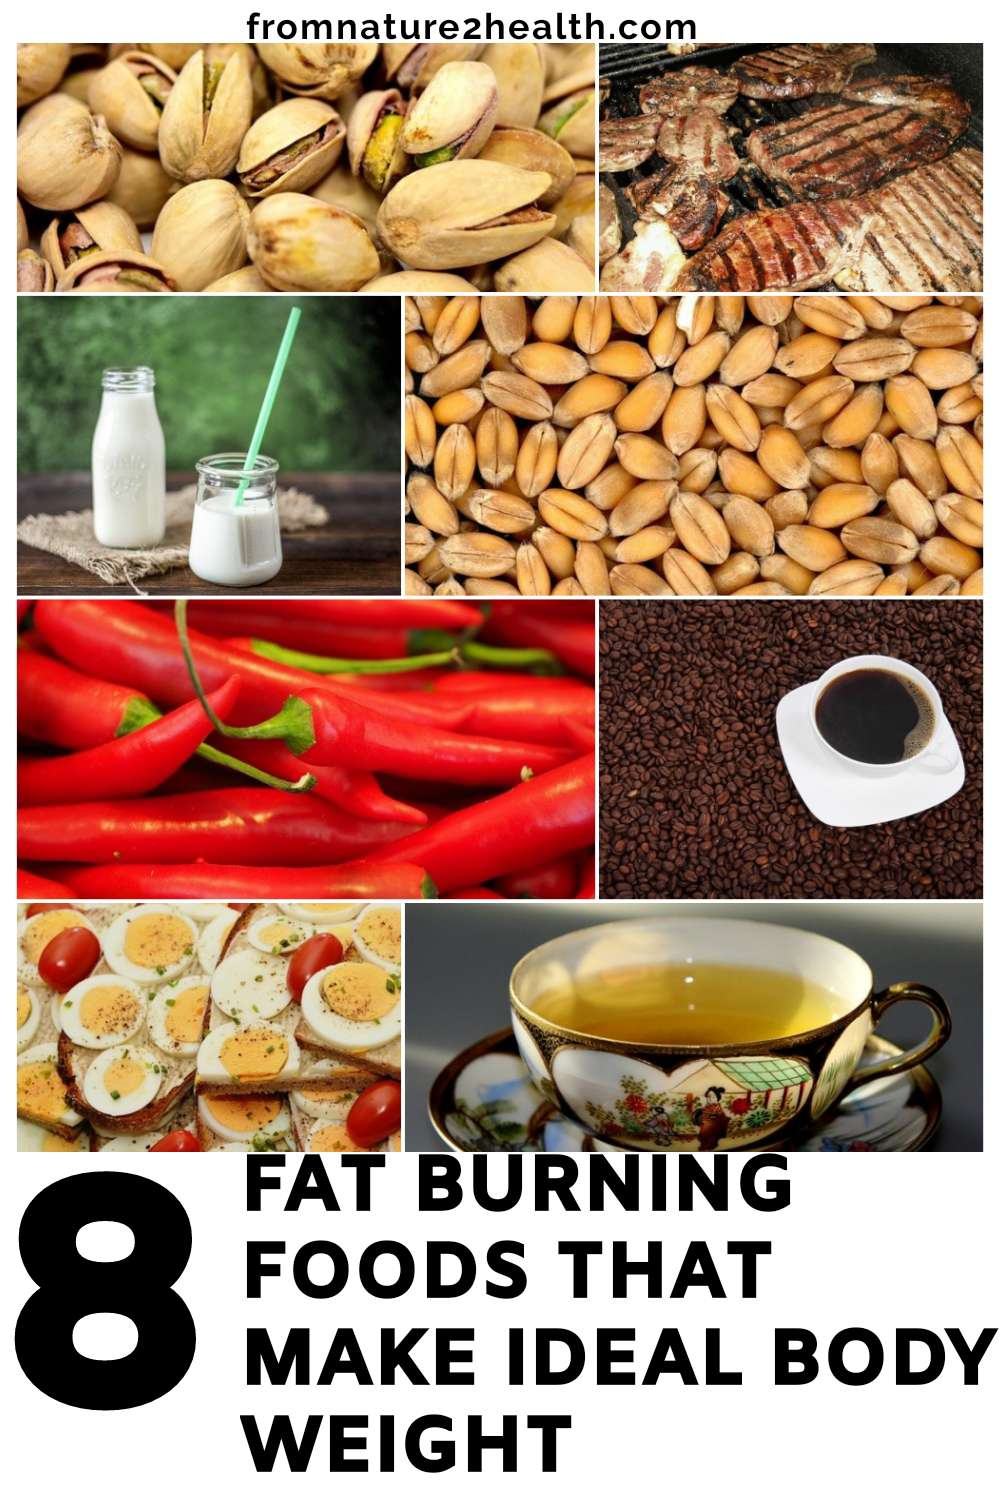 8 fat burning foods that make ideal body weight - from